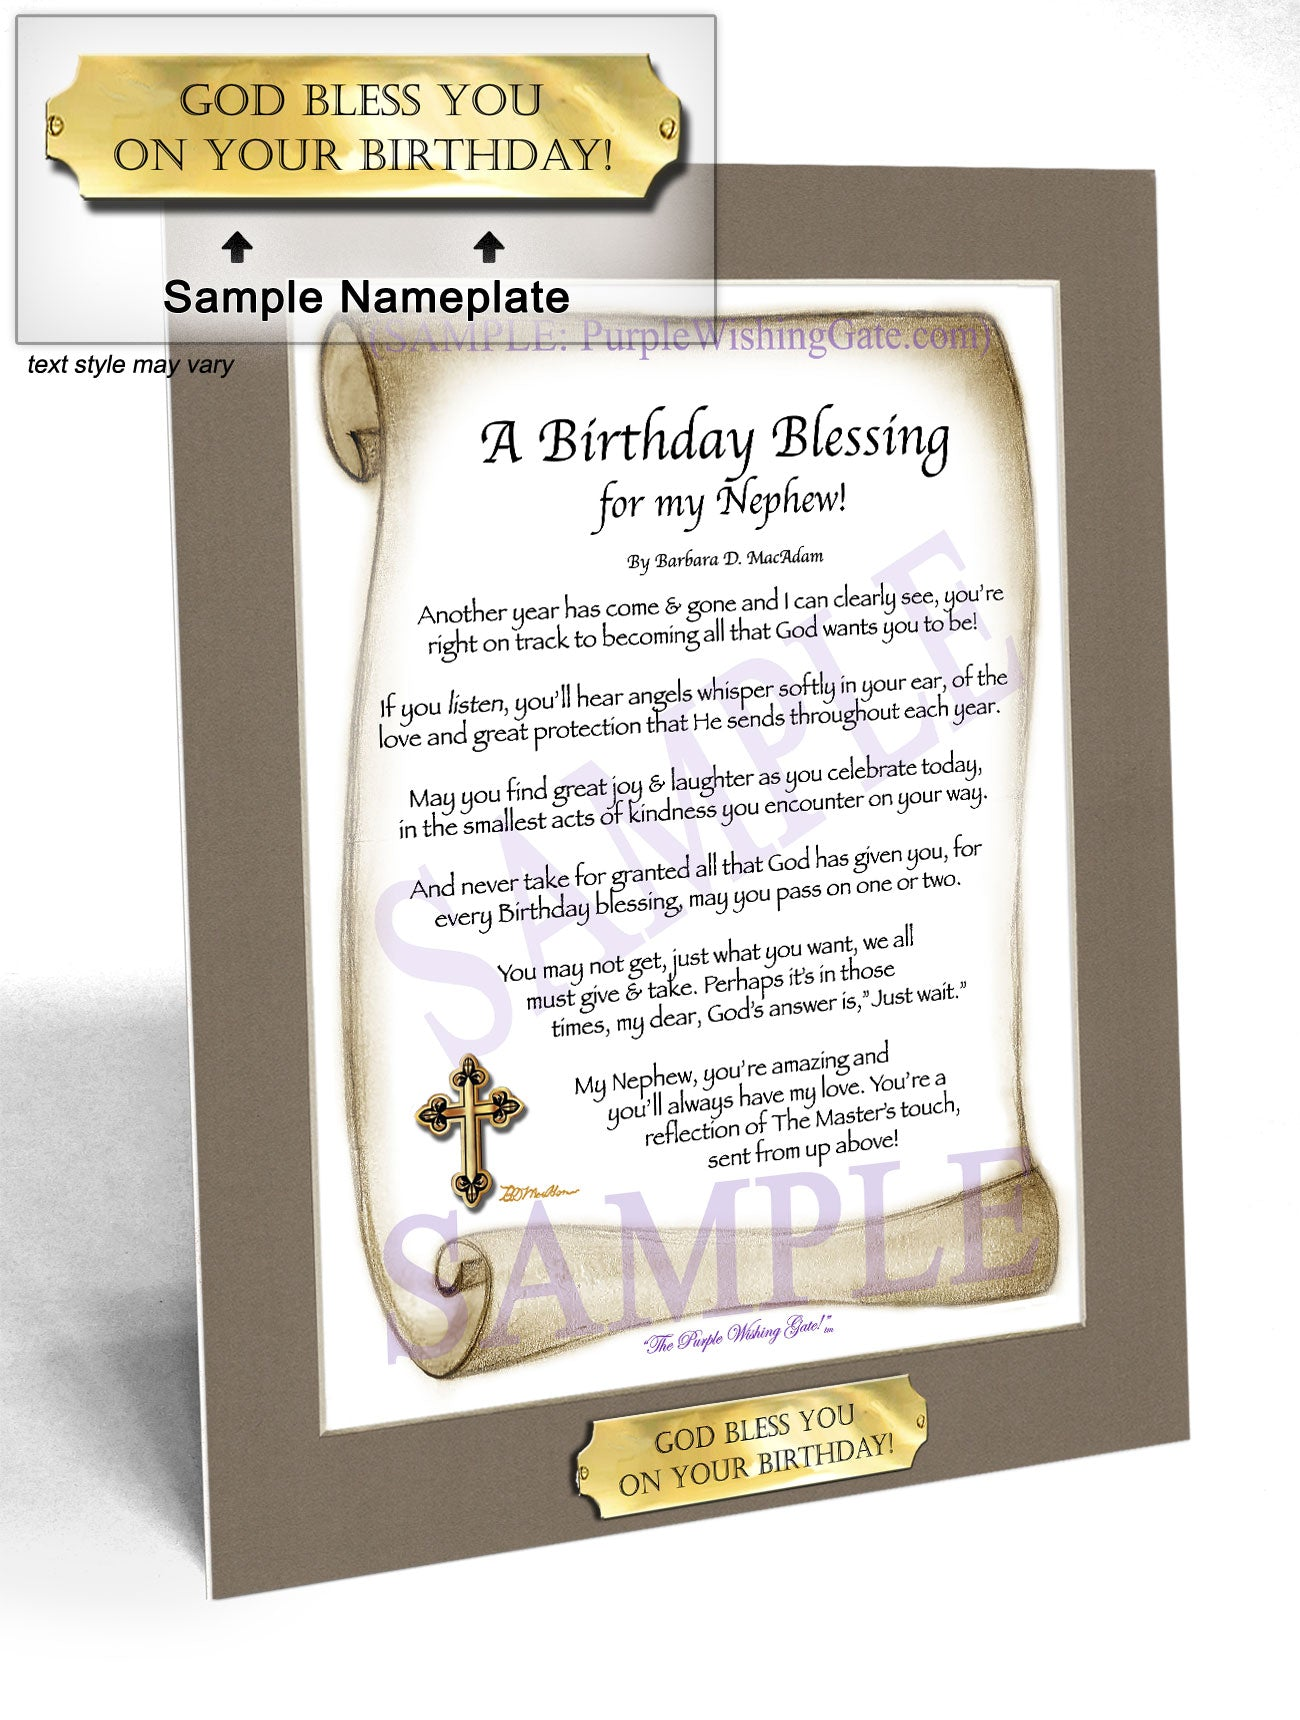 A Birthday Blessing for my Nephew! - Birthday Gift - PurpleWishingGate.com